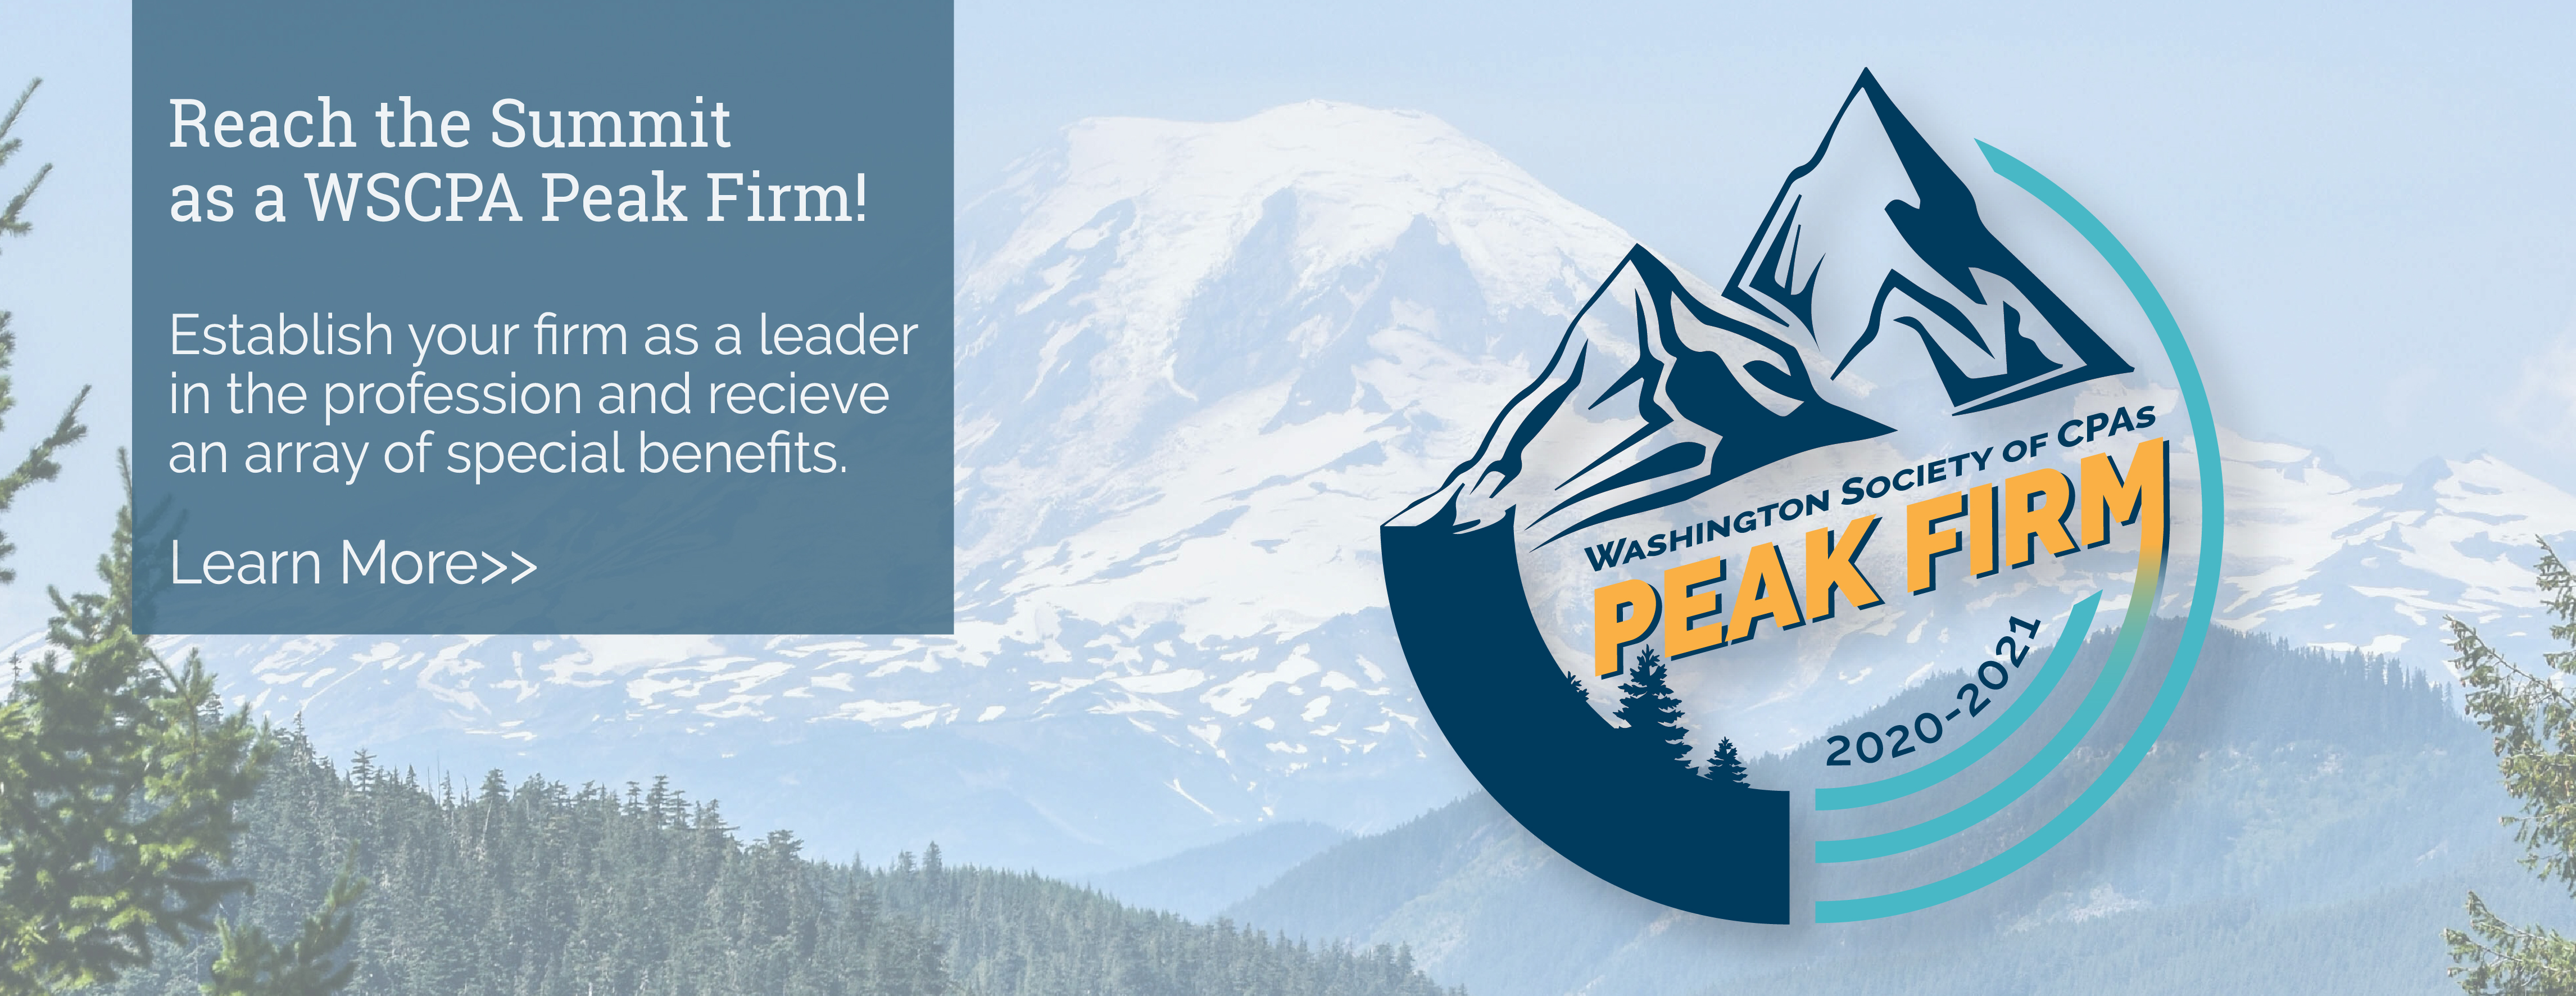 Become a WSCPA Peak Firm